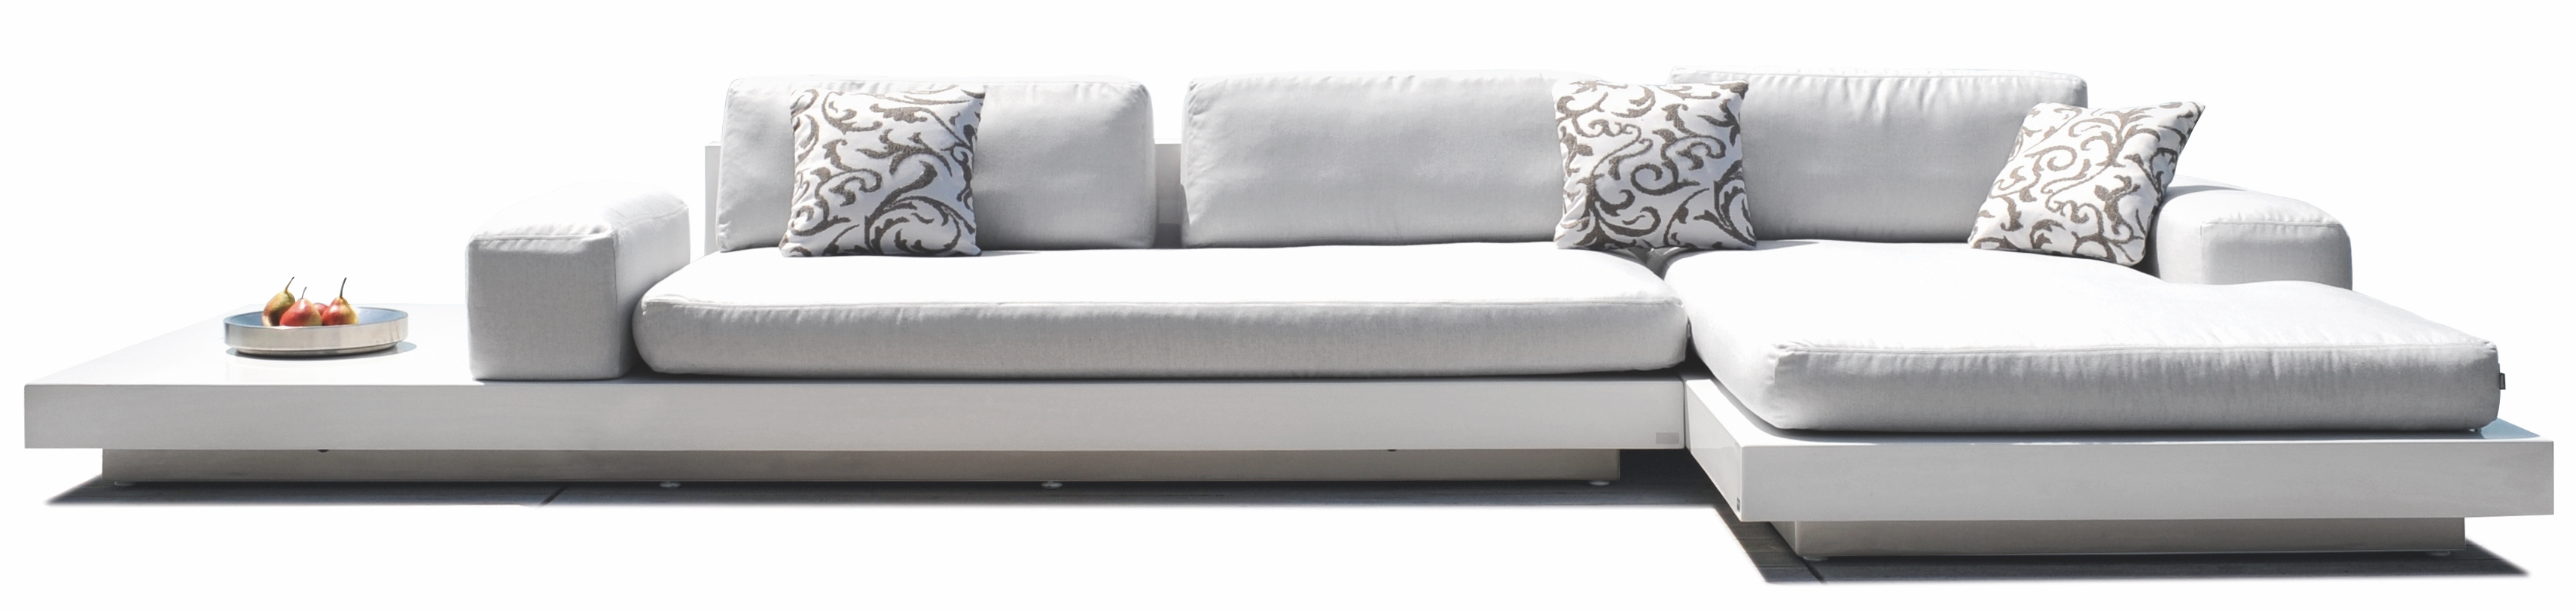 Sleek sofa sleek sofa designs with sleek sofa designs Sleek sofa set designs